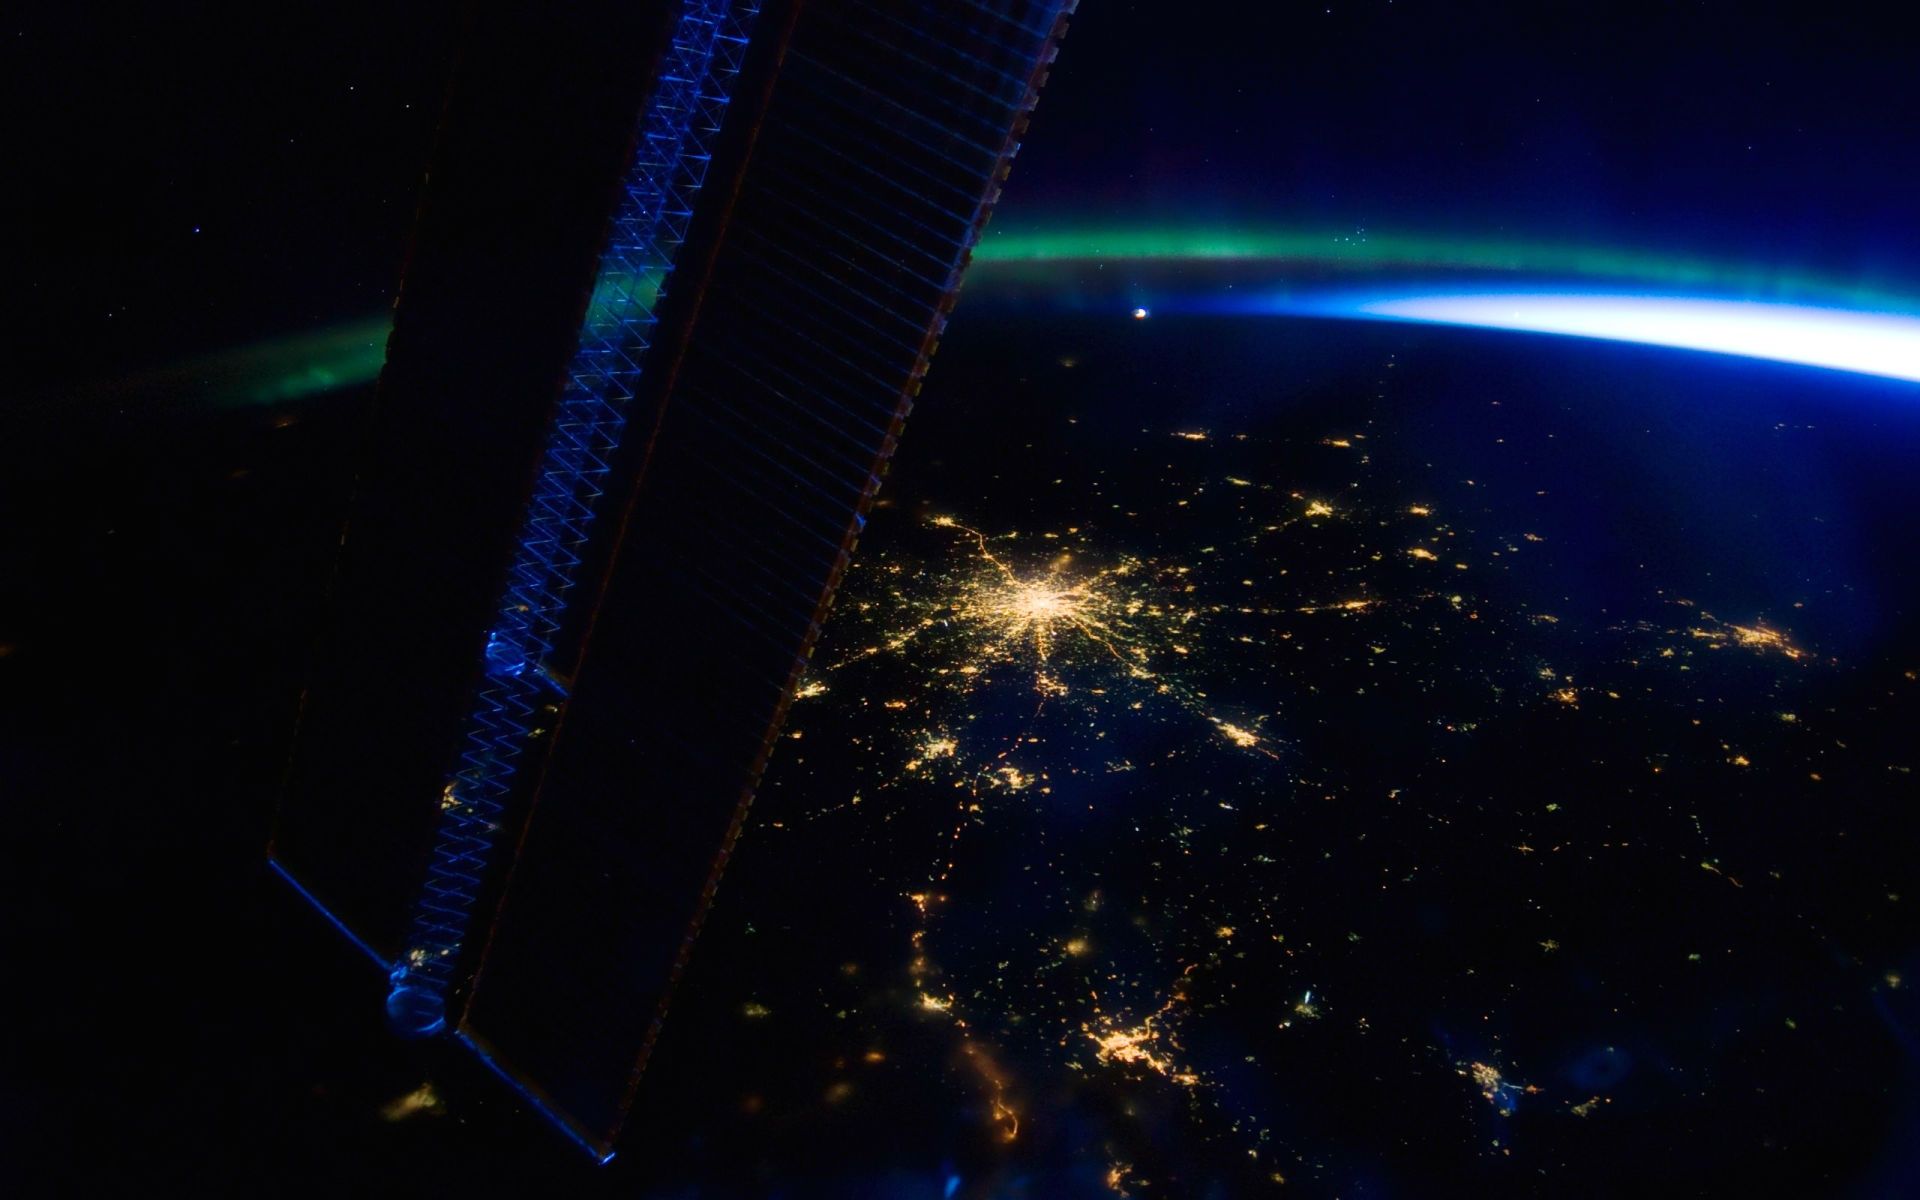 Wallpaper Earth Above Space Hd Space 6408: Moscow From The I.S.S. Full HD Wallpaper And Background